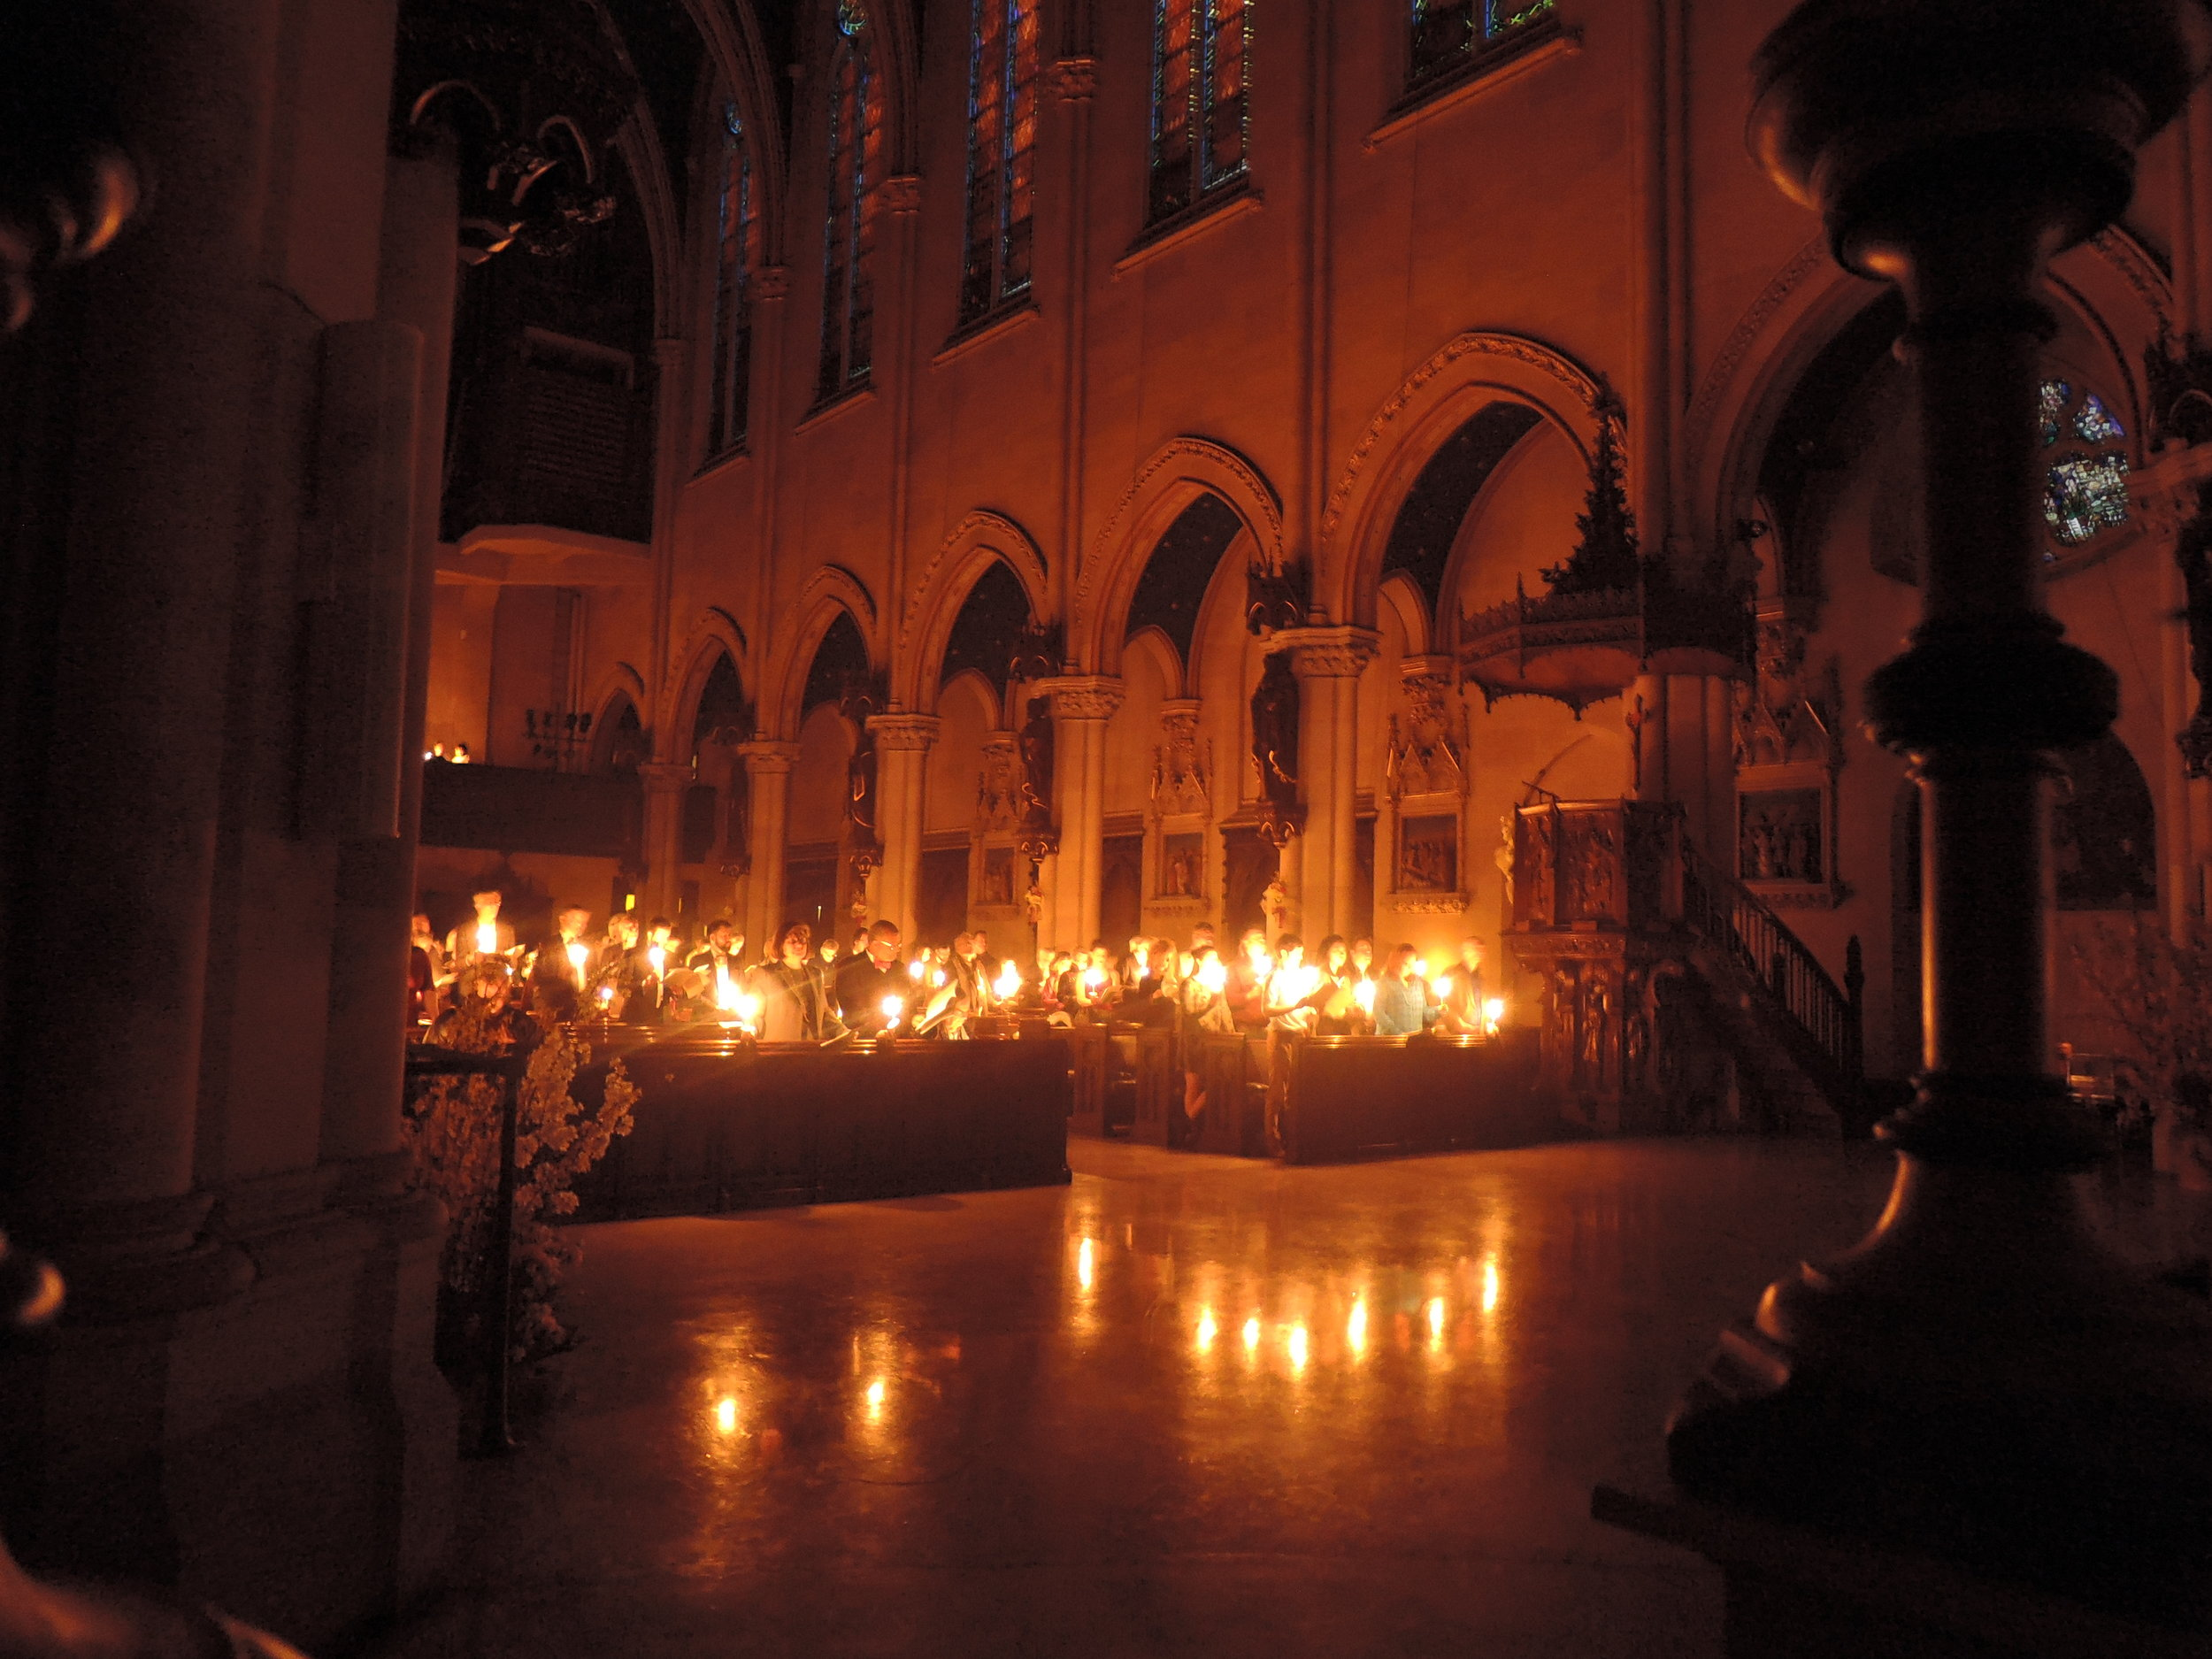 Easter Vigil at Saint Mary's